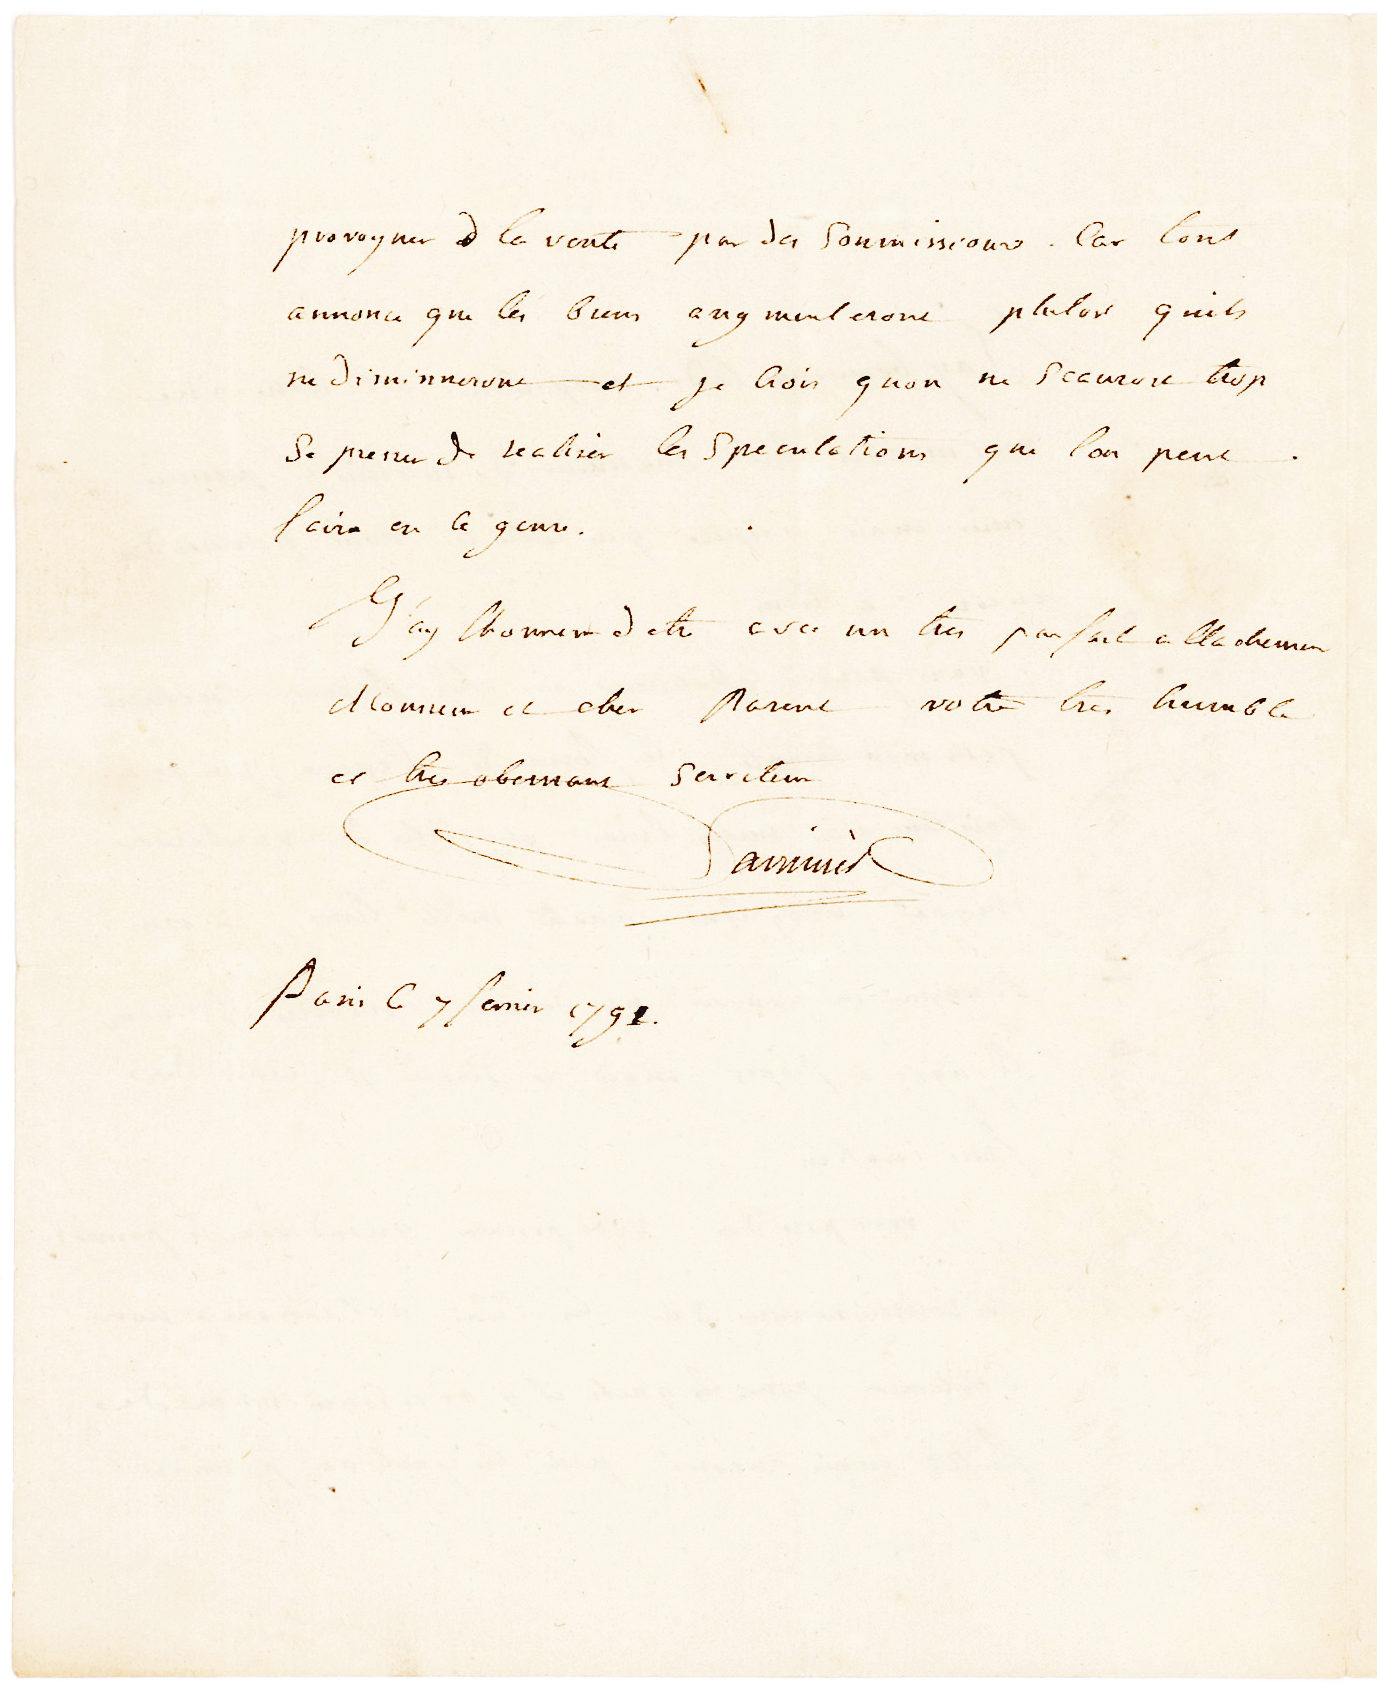 Rare ALS by Lavoisier, French Scientist & Financier, with Historic Provenance